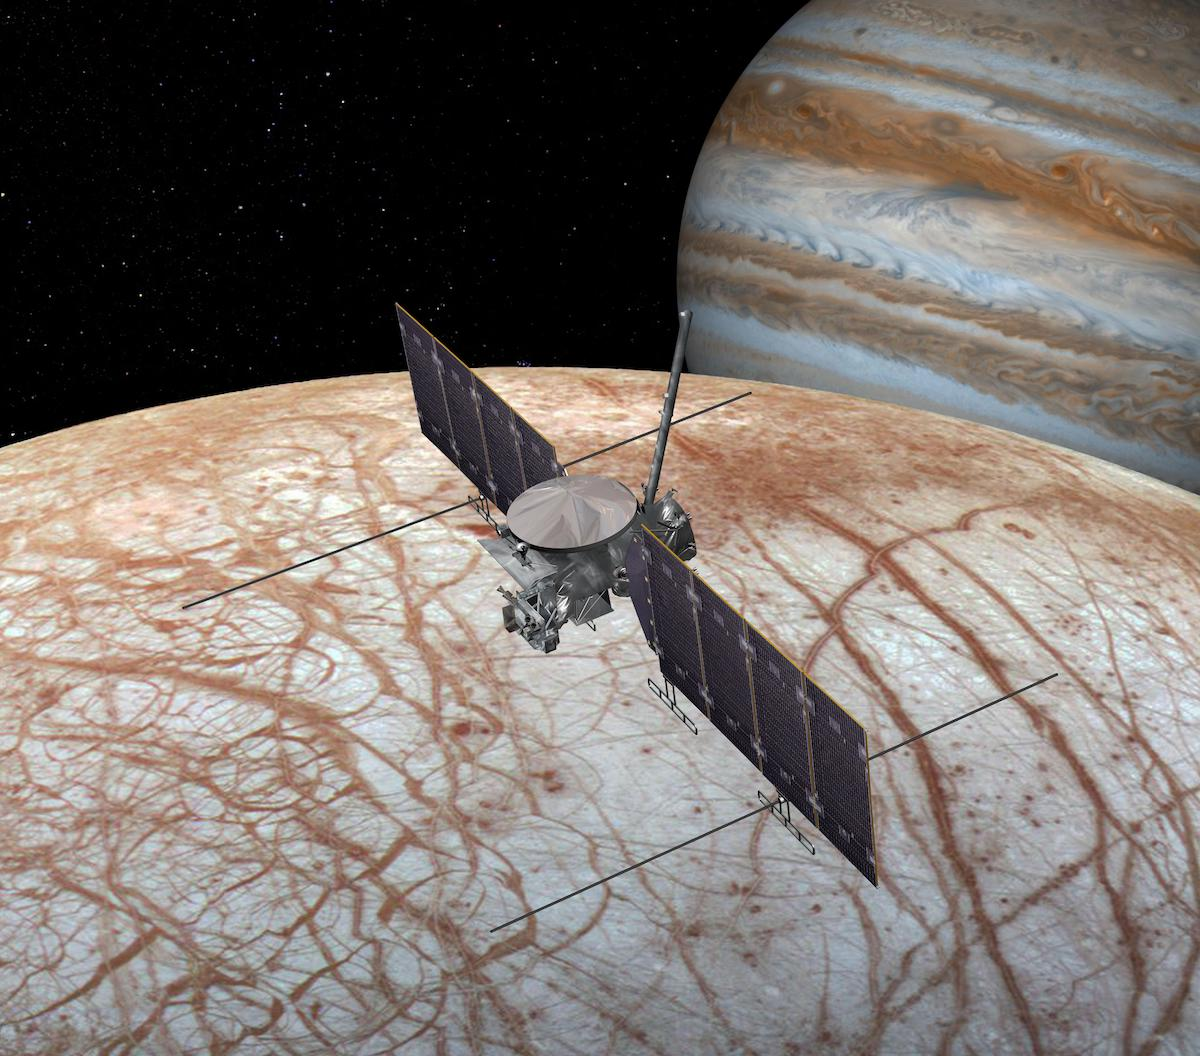 spacecraft over surface of Europa with Jupiter in background